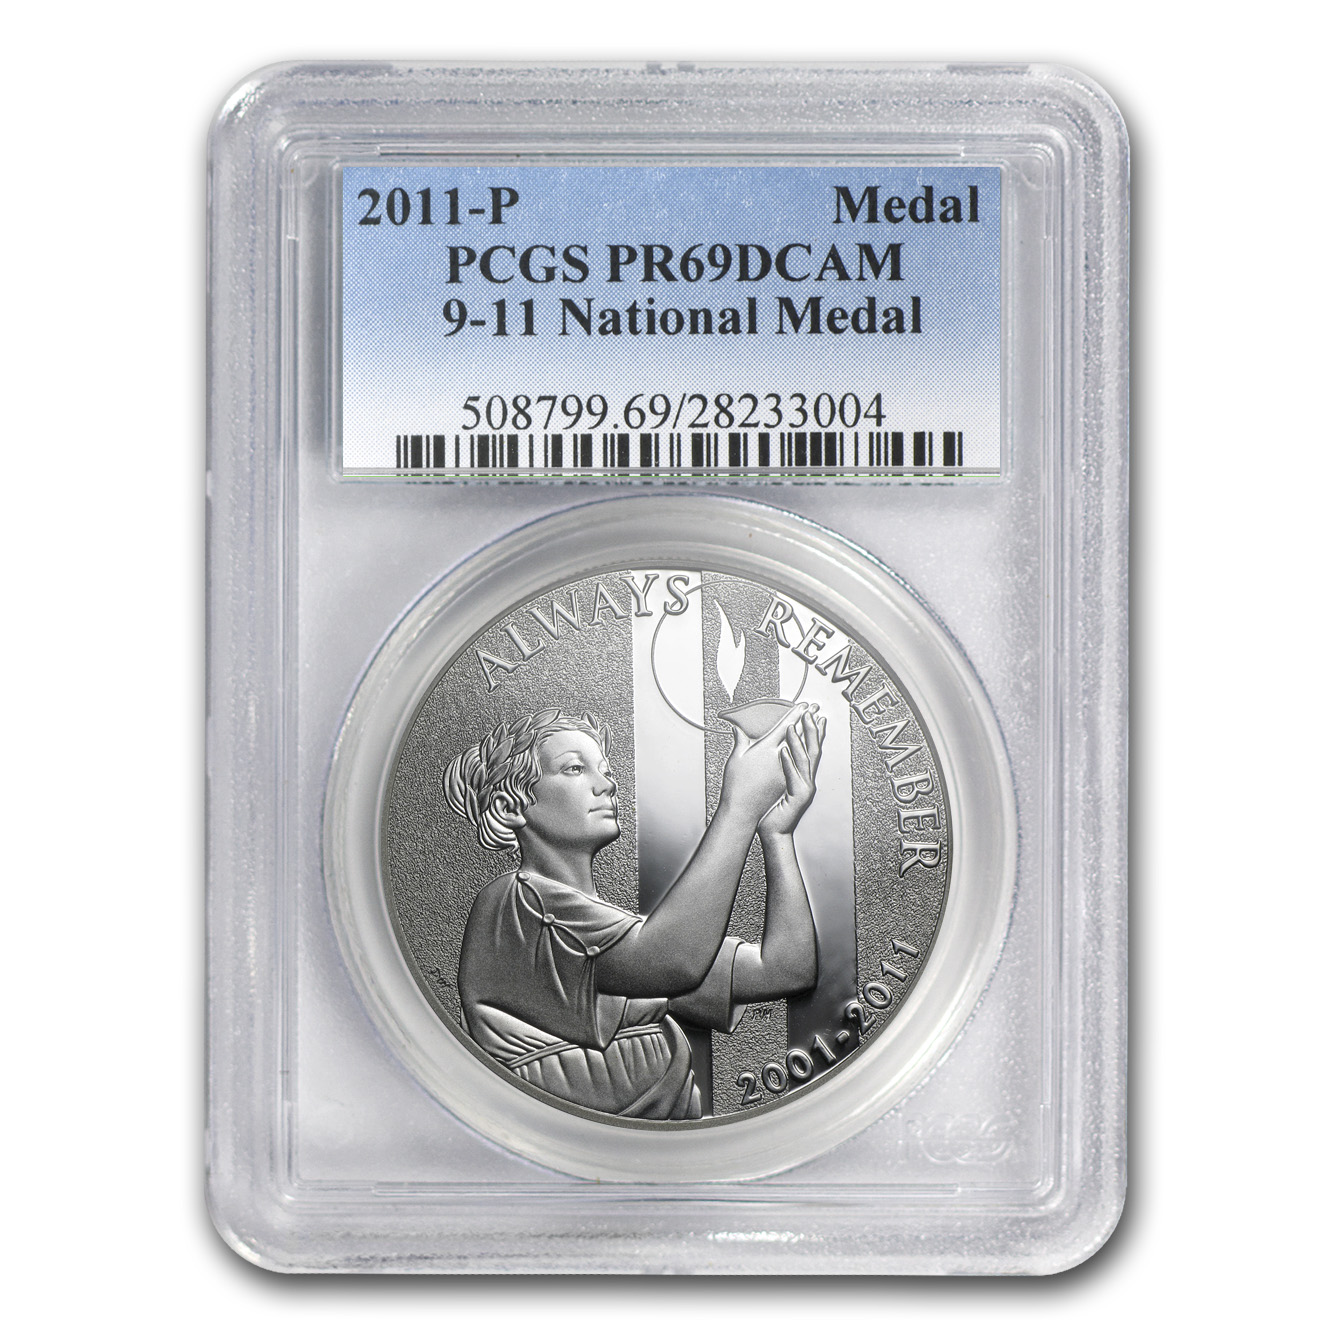 2011-P 9/11 National Medal PR-69 PCGS